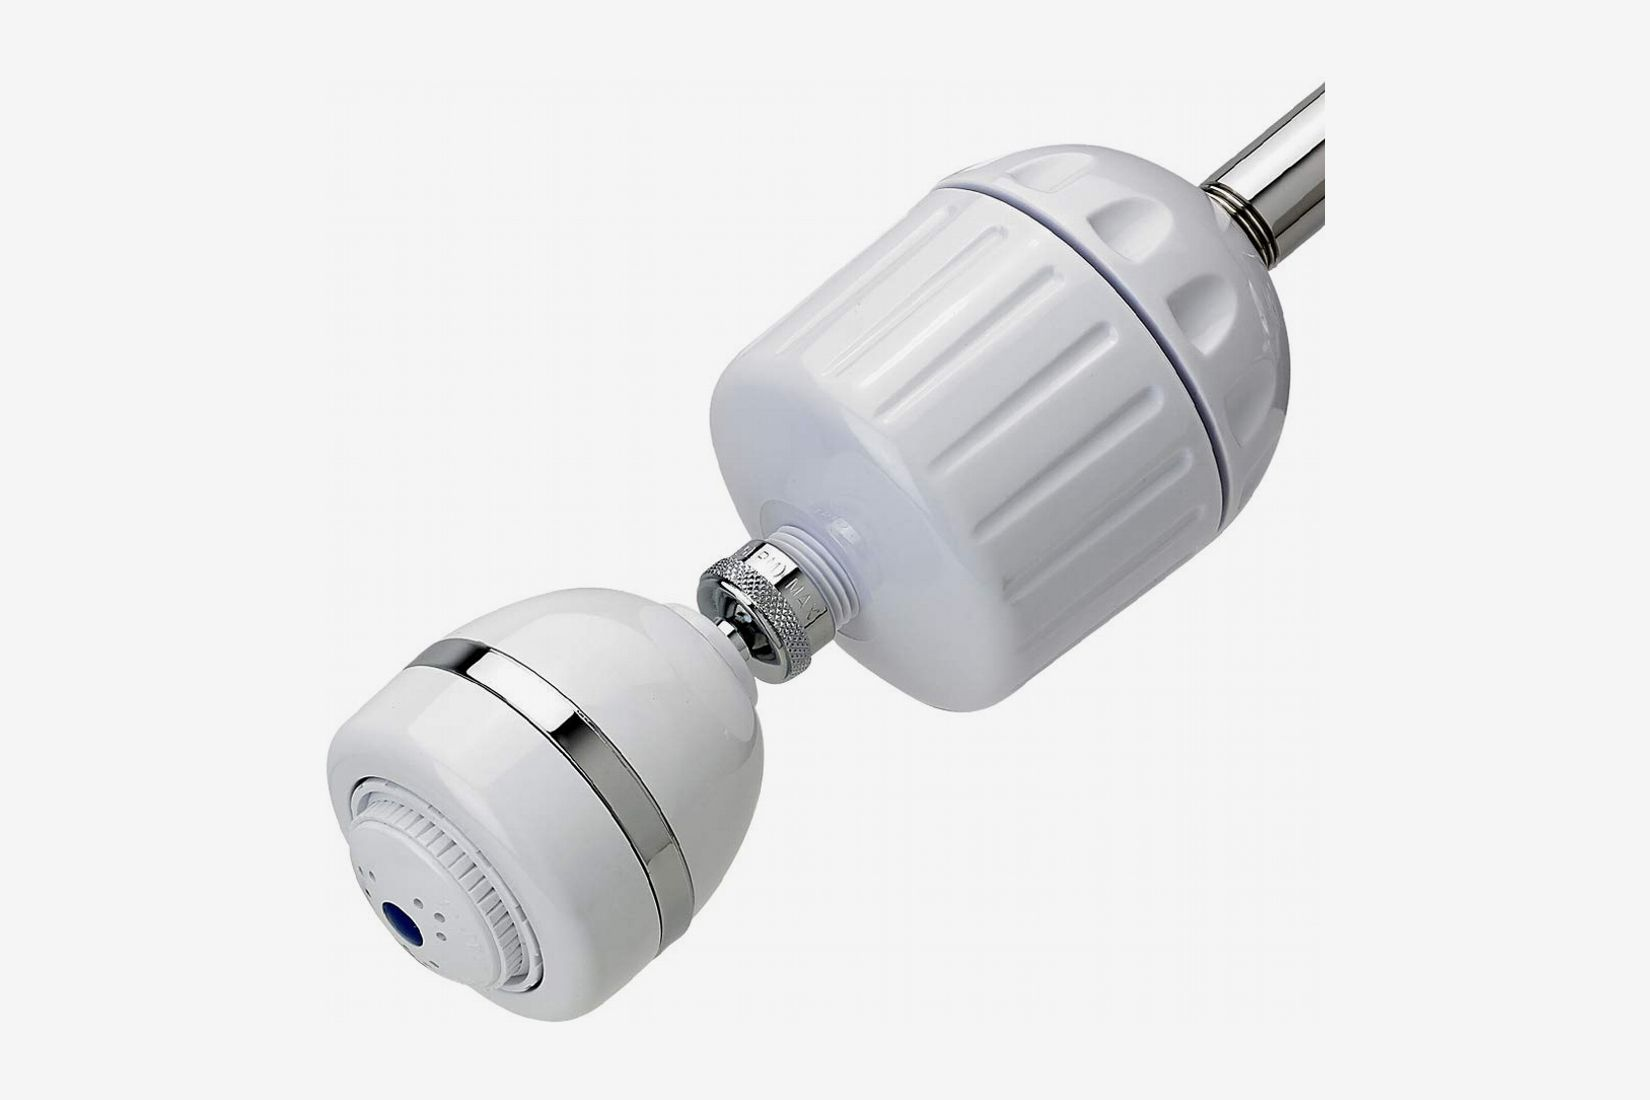 Sprite High Output Shower Filter with Additional Shower Head